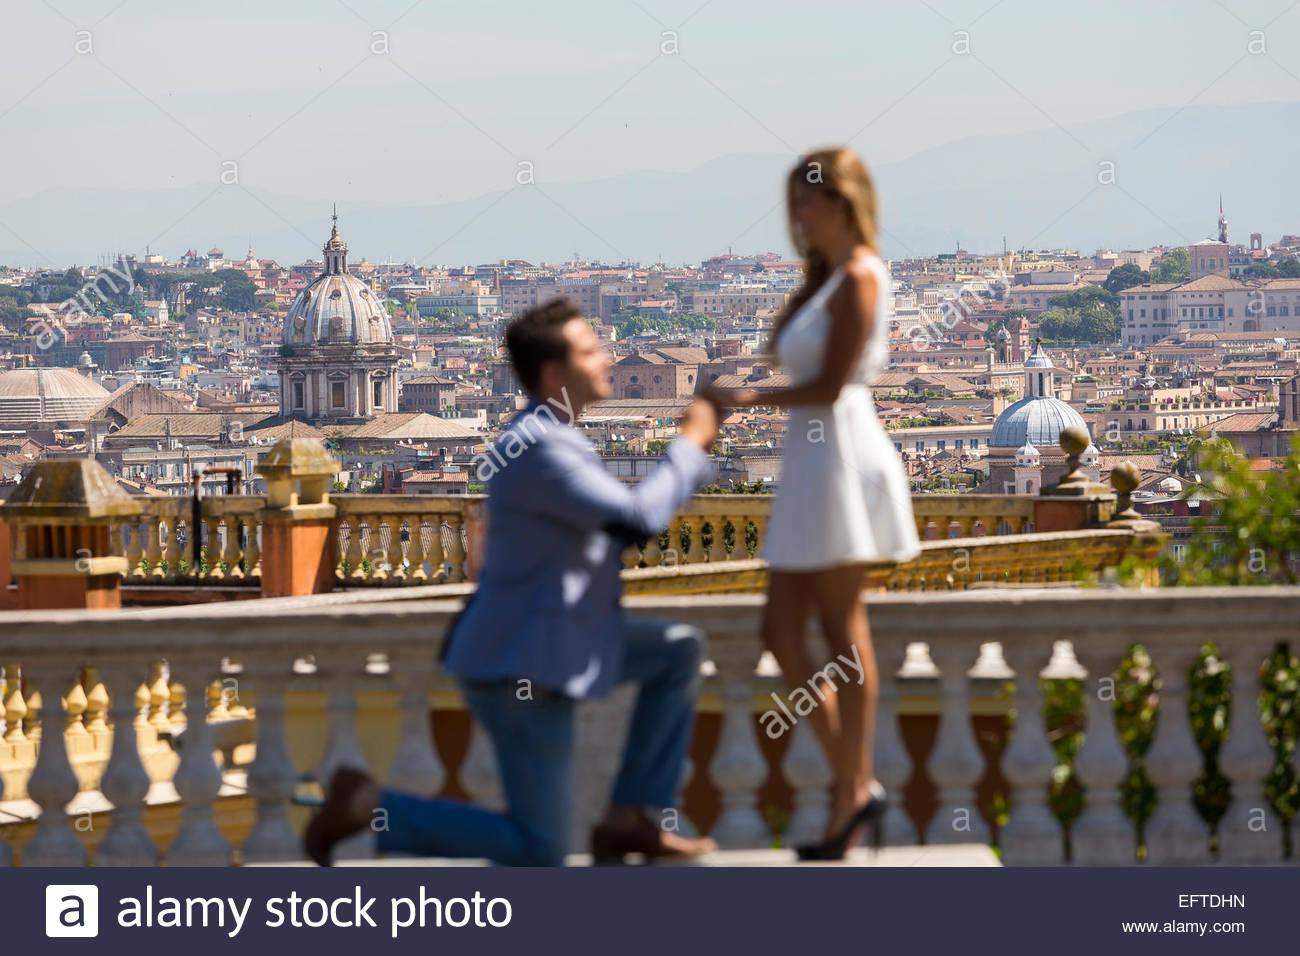 Wedding proposal over the roman rooftops - Stock Image